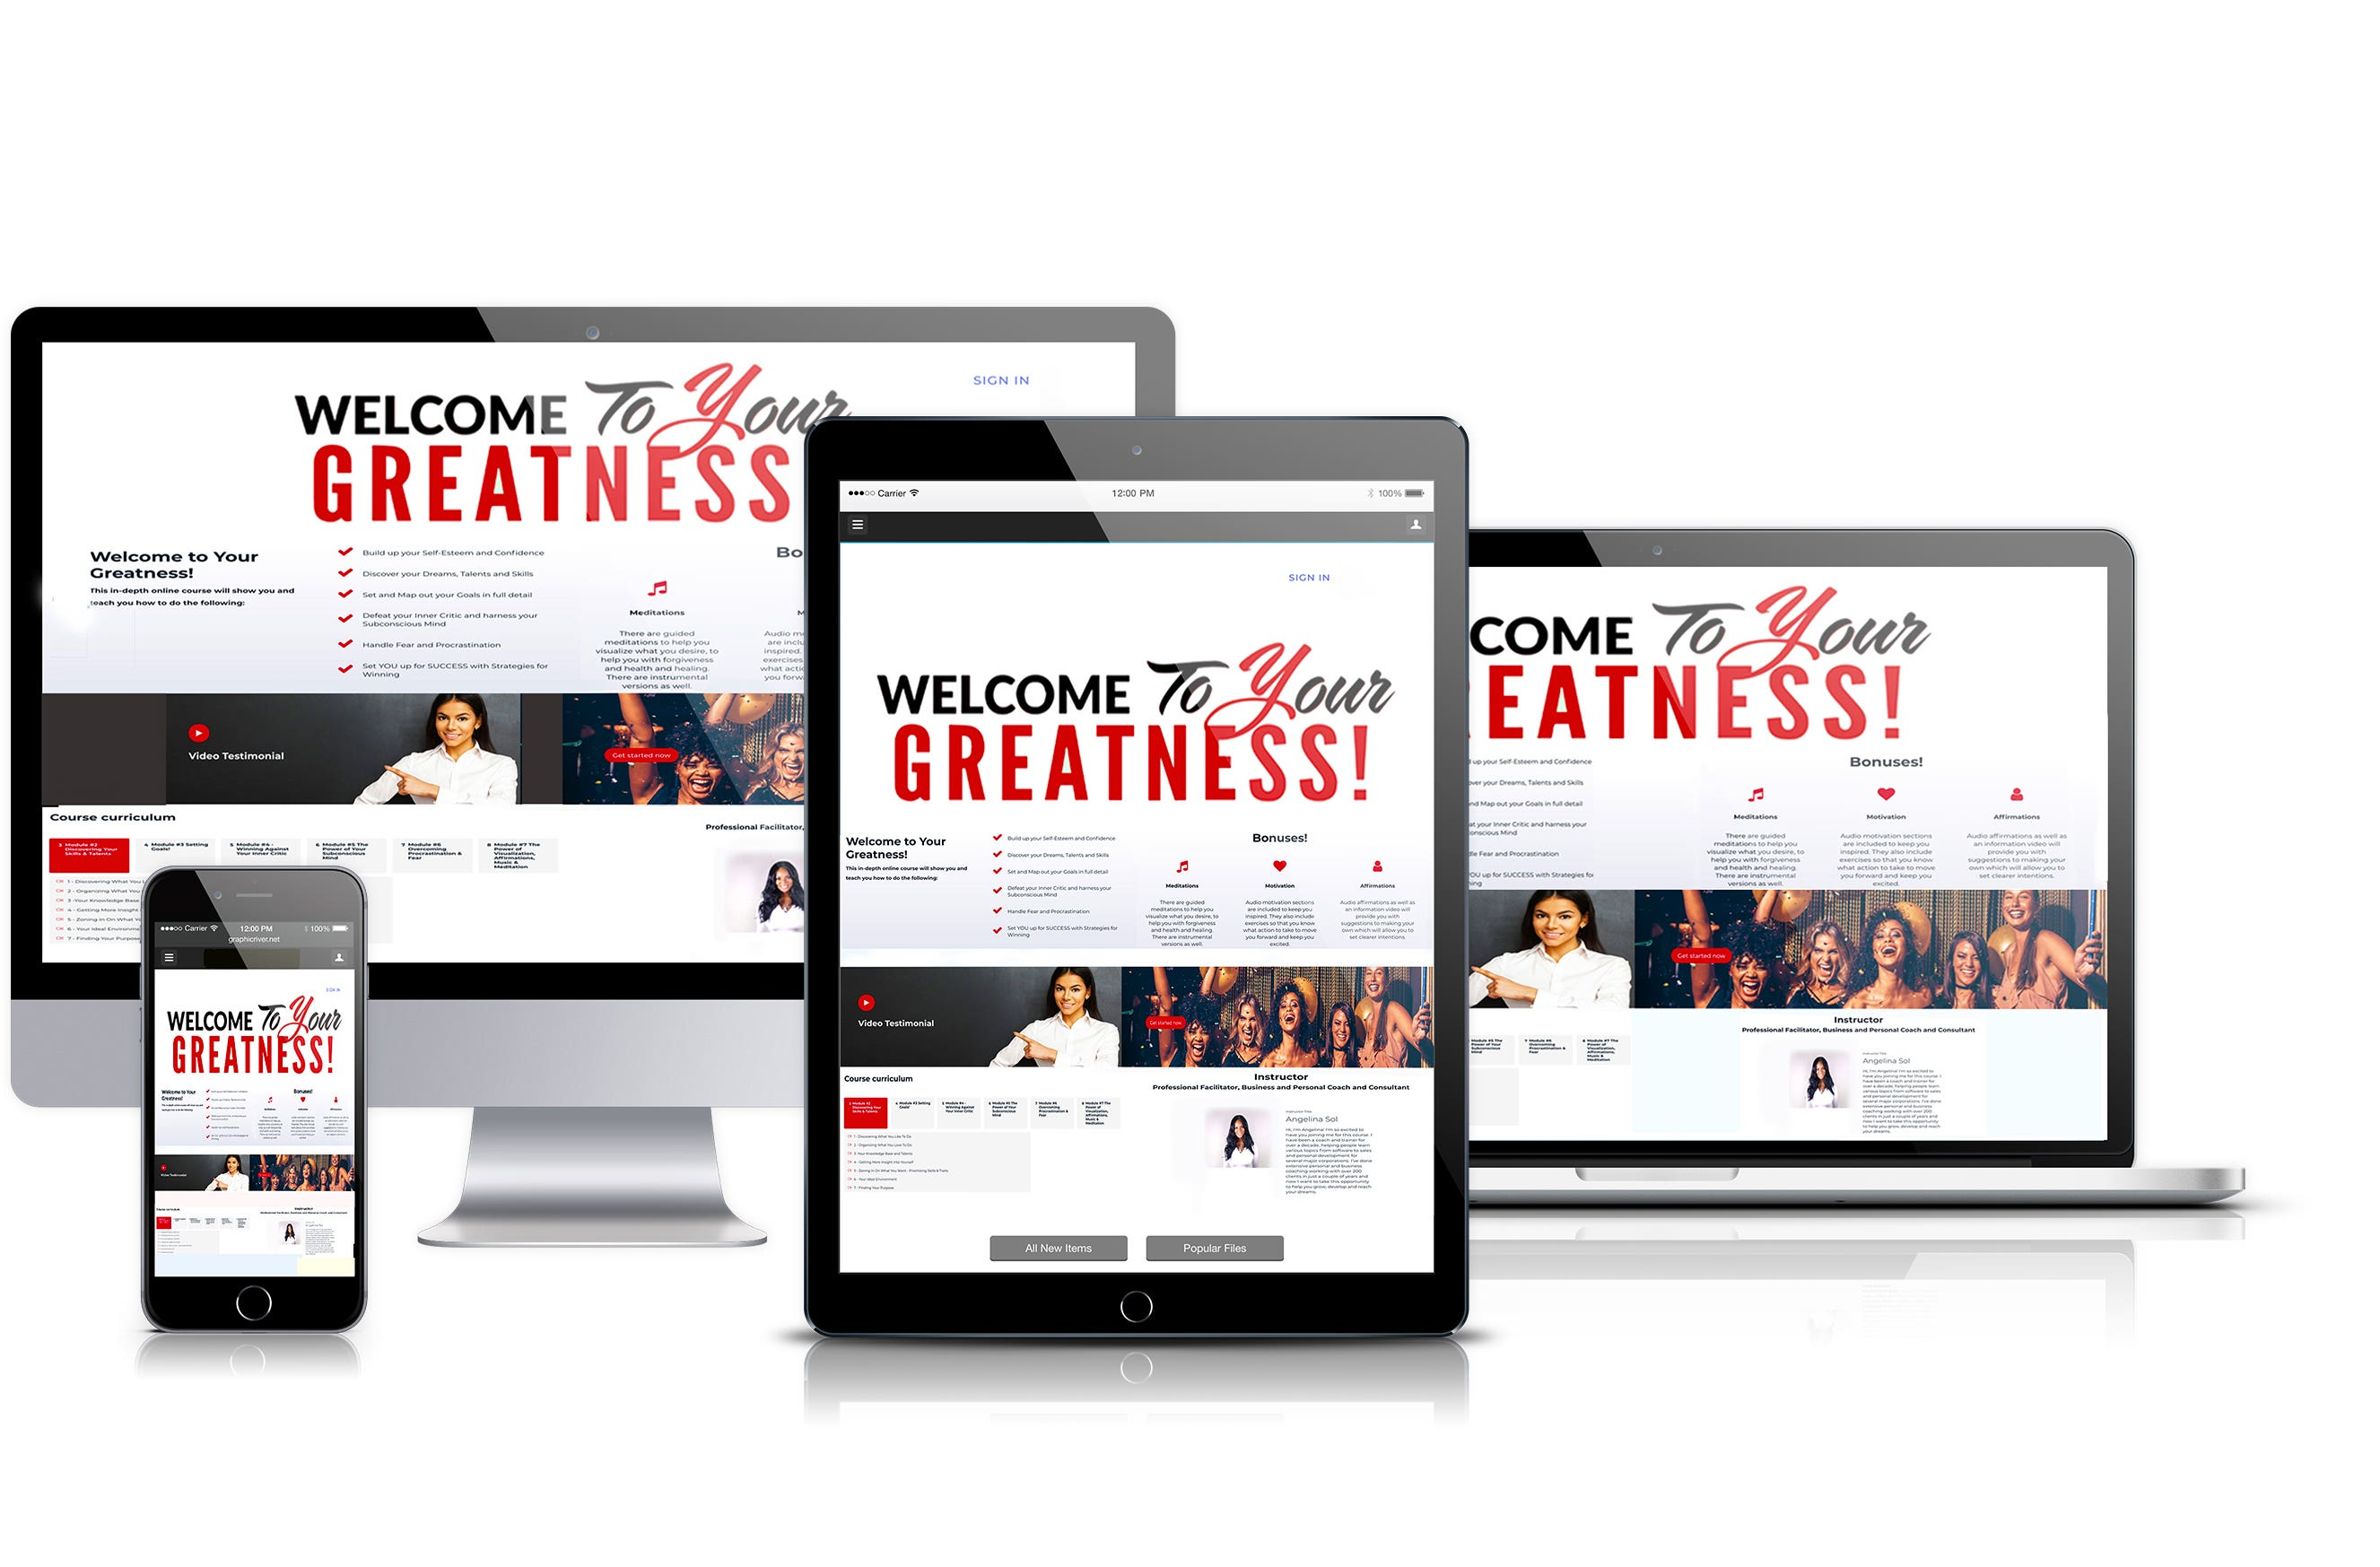 Welcome to Your Greatness!